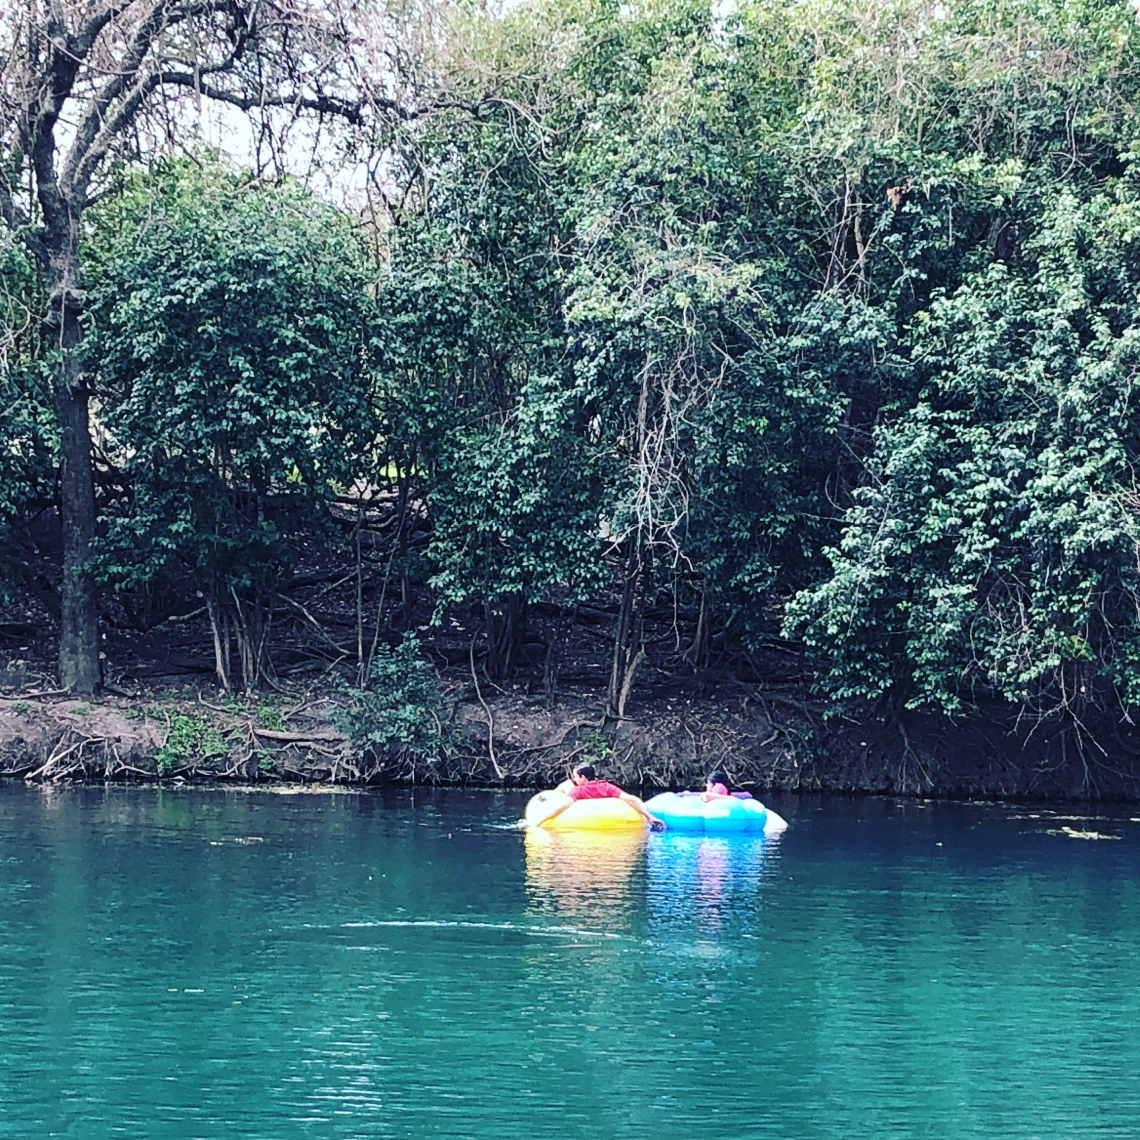 Tubing on the Comal River in New Braunfels